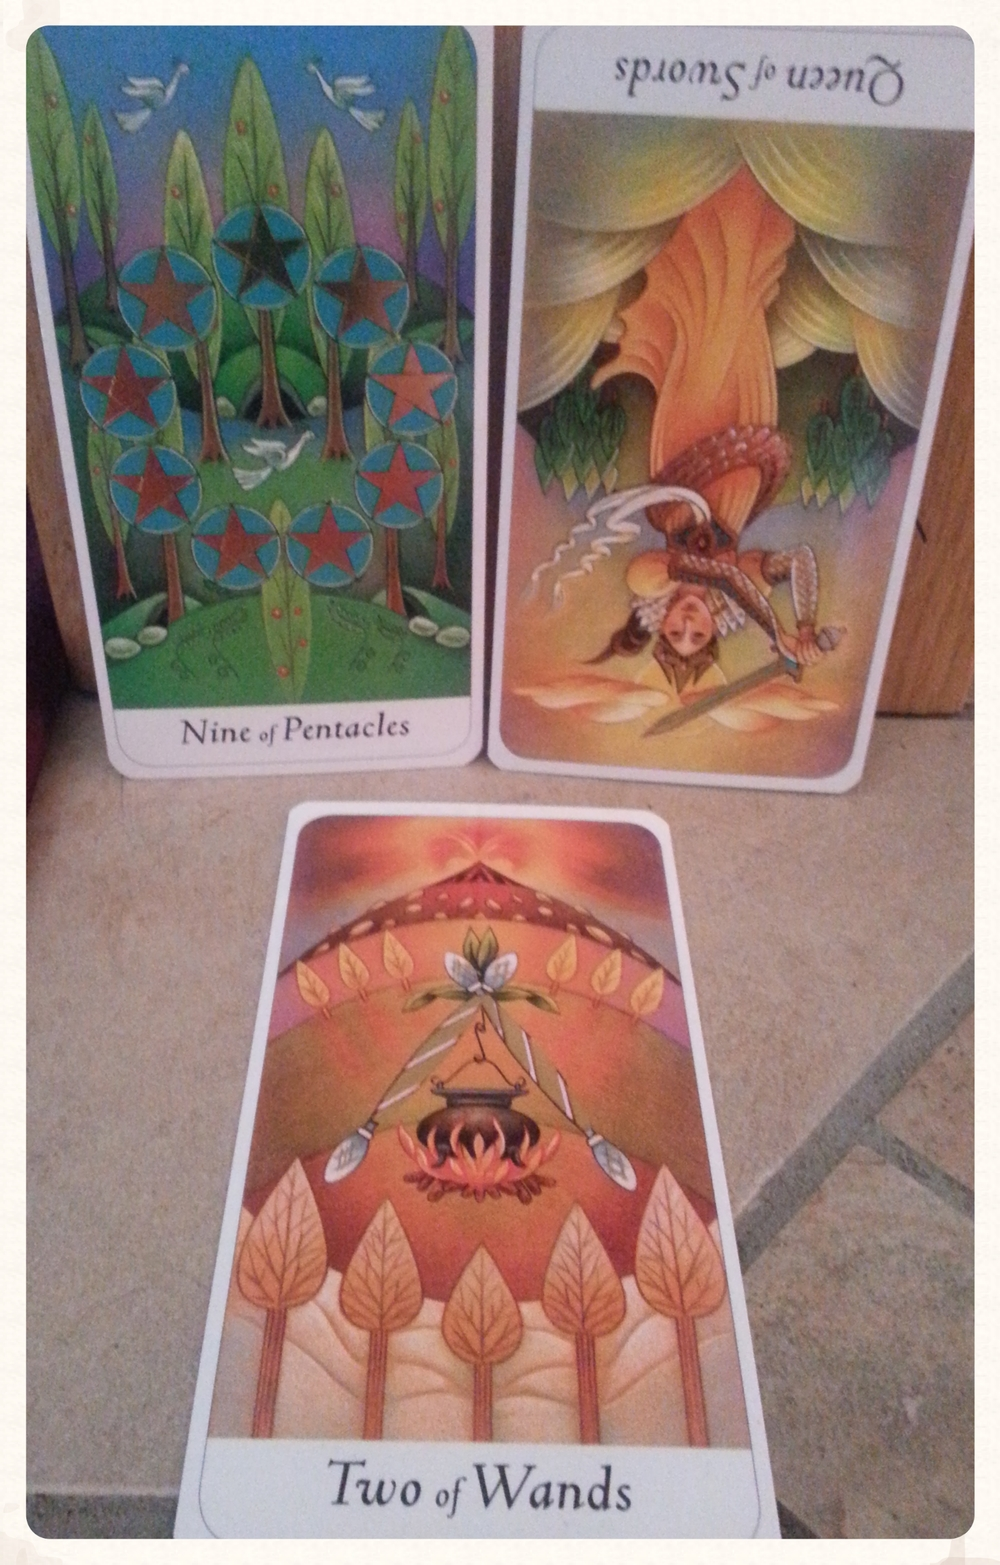 CARDS FOR THIS FULL MOON WEEKEND SATURN'S DAY & SUN-DAY (ABOVE) & OUR THEME OF THE WEEK (BELOW)